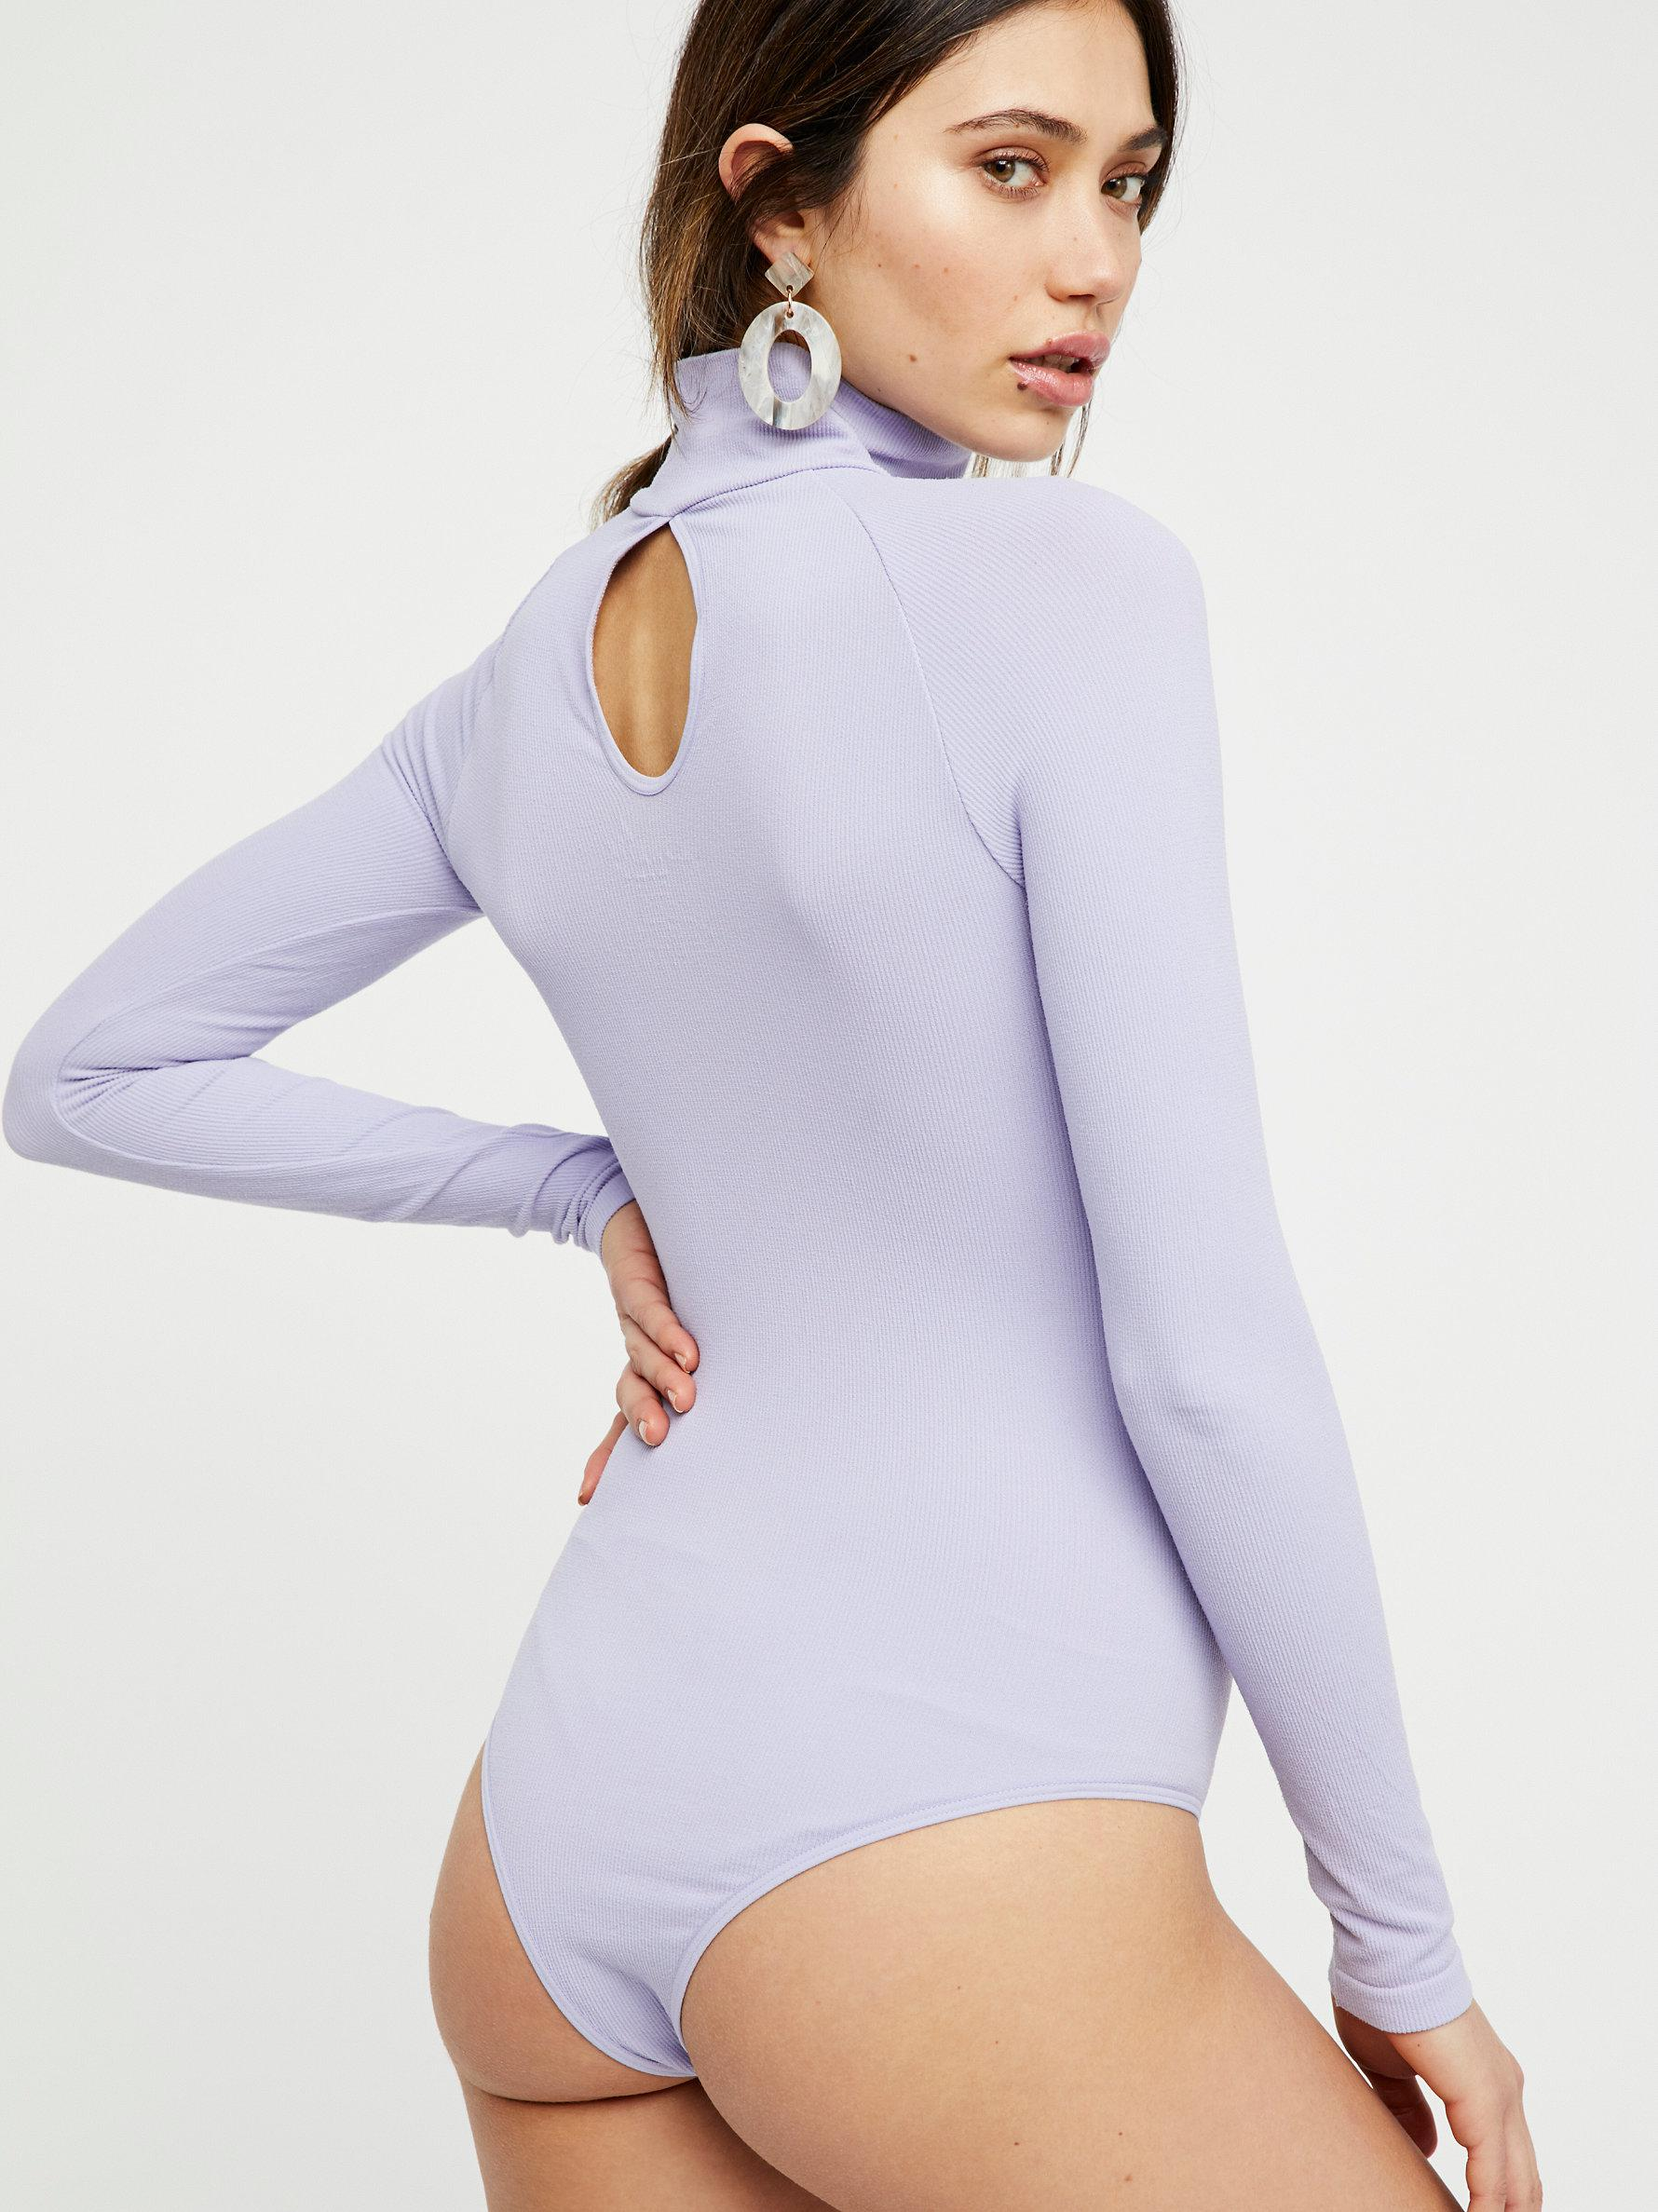 New-Free-People-Womens-Ribbed-Long-Sleeve-Seamless-Turtleneck-Bodysuit-Top-48 thumbnail 31